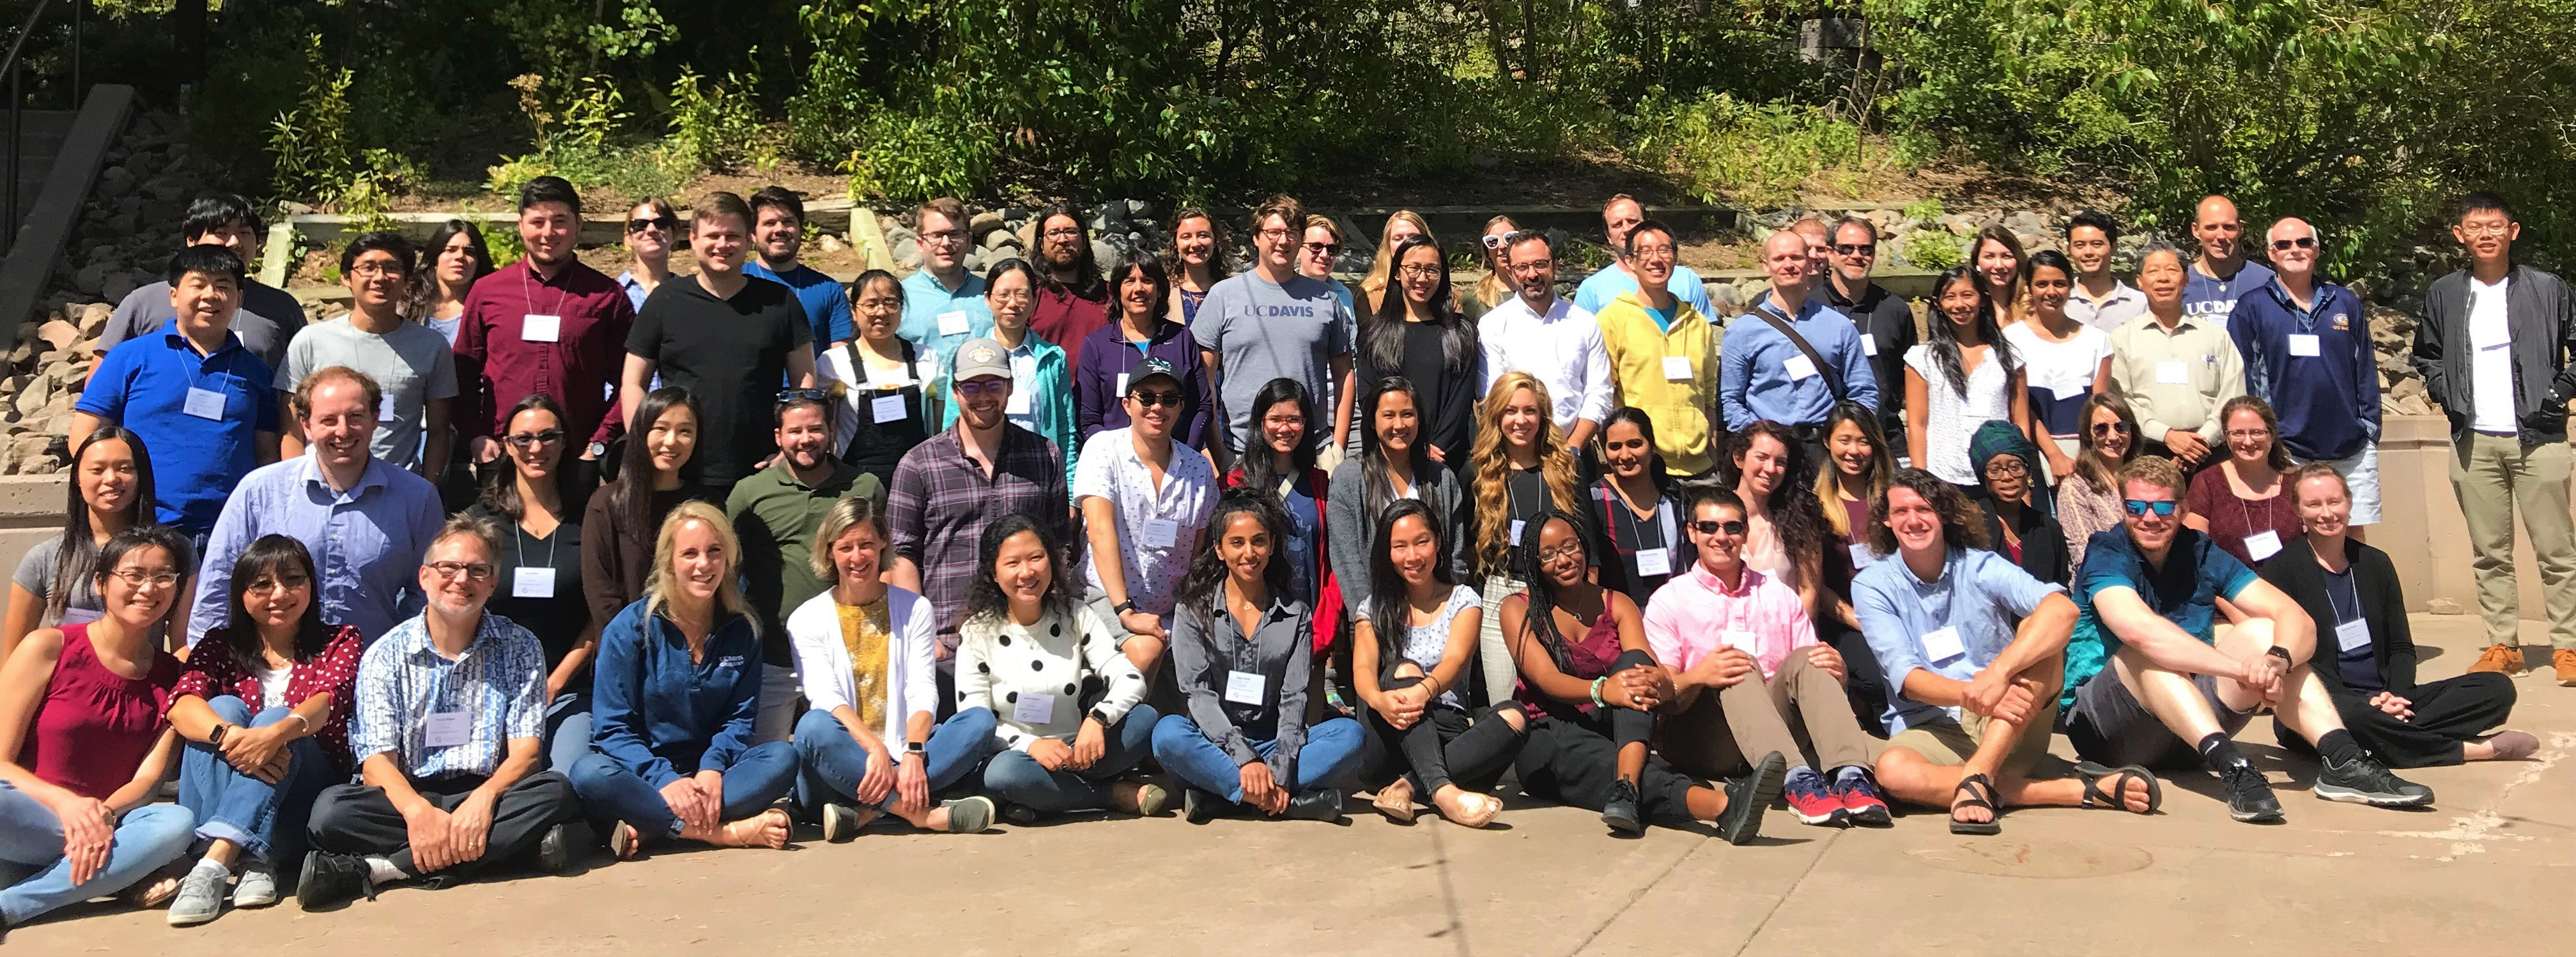 2019 Chemical Biology Retreat group photo